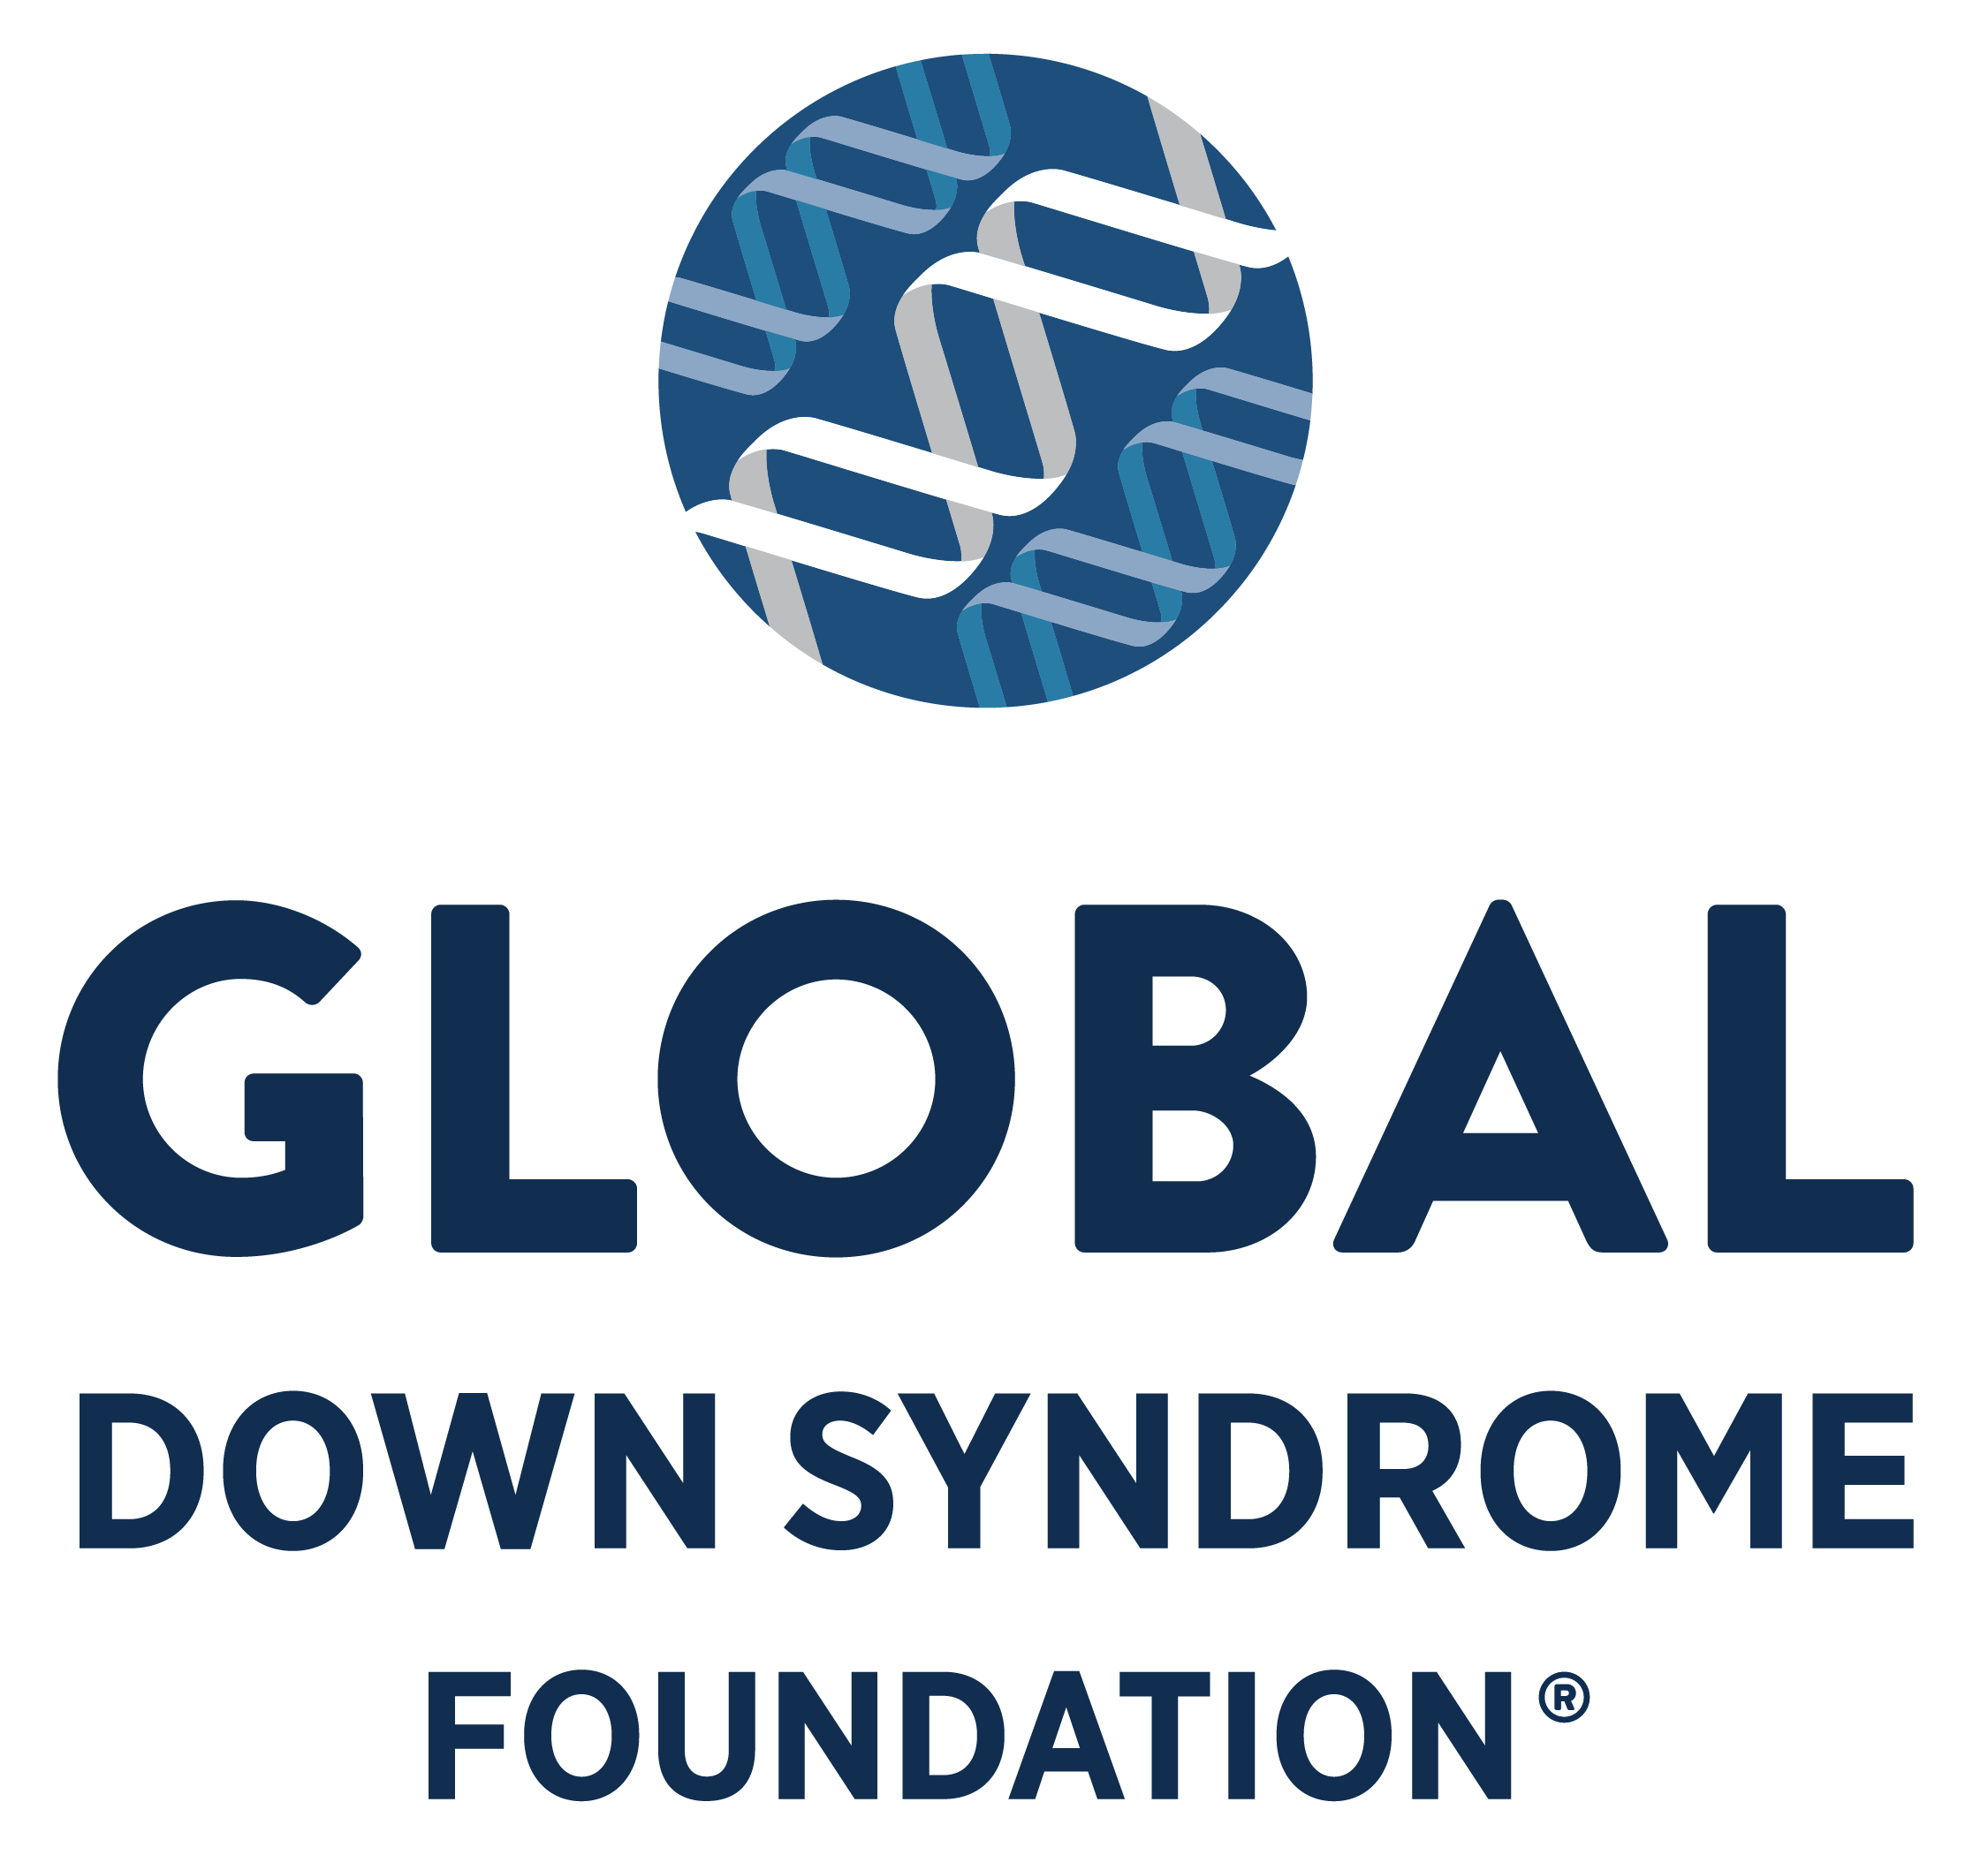 global down syndrome foundation.png